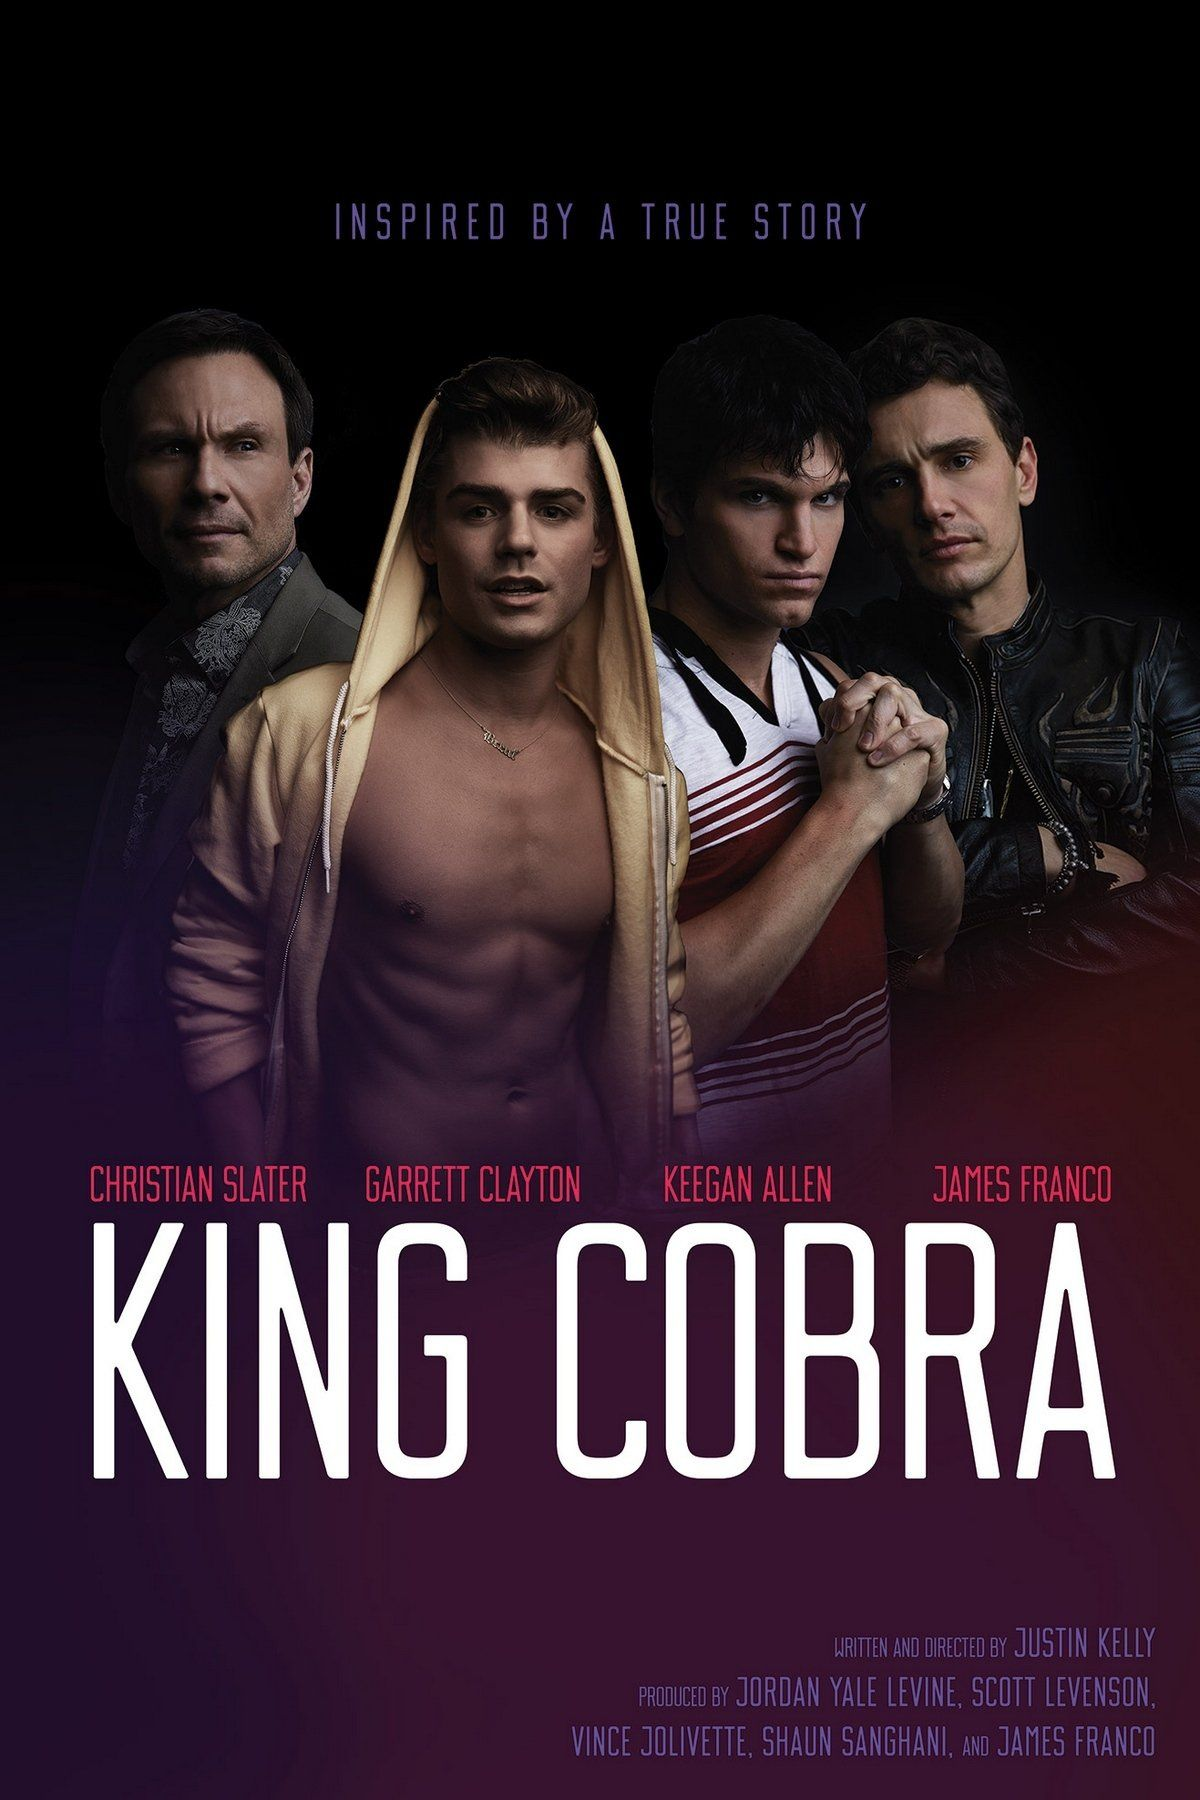 King Cobra Watch Online Free Only At Movieboxd 100 Ad Free No Registration Or Credit Card Needed To Stream King Cobra